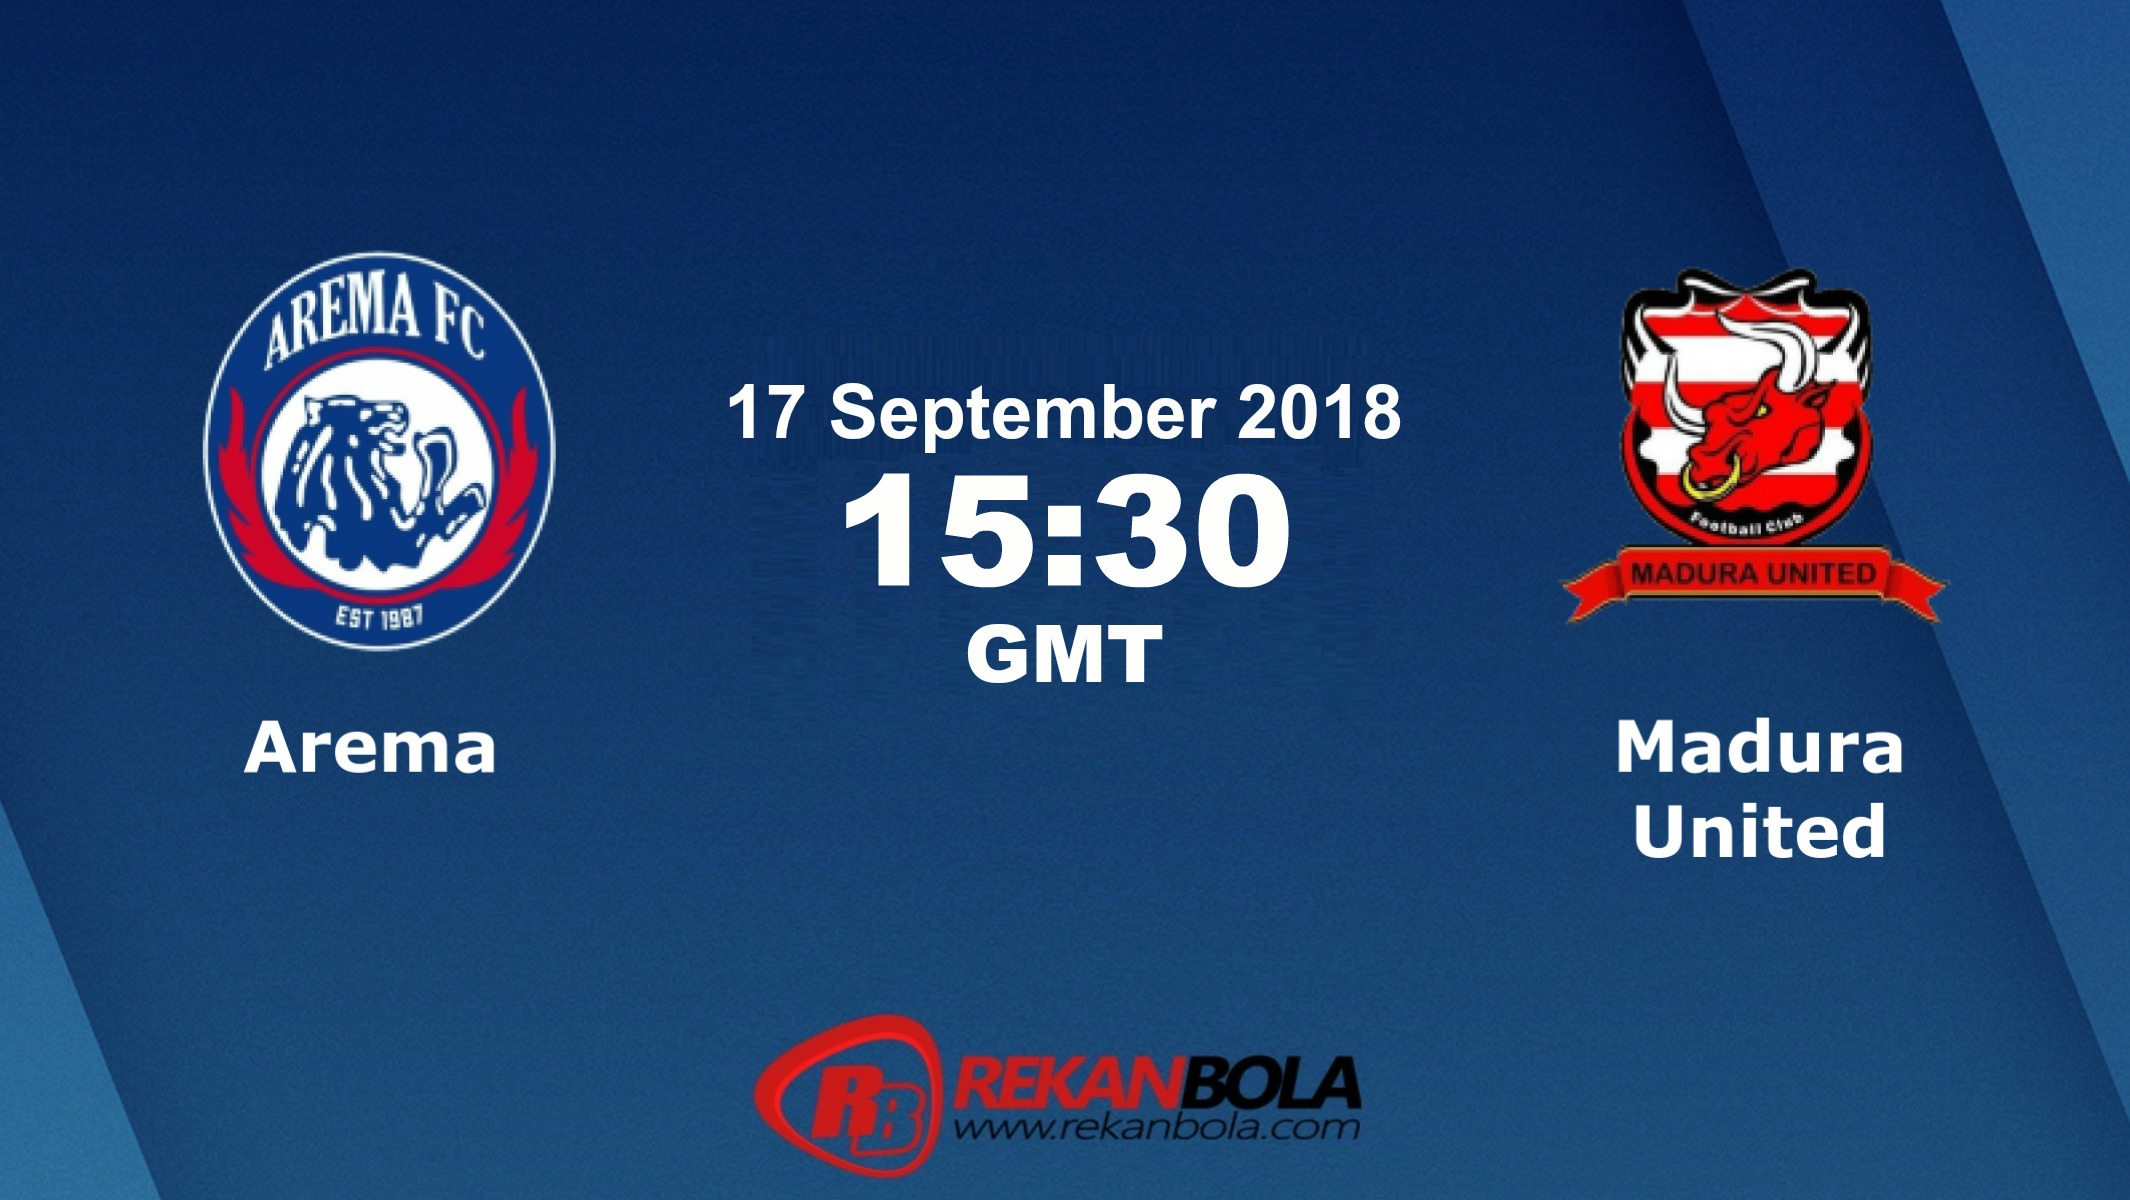 Nonton Siaran Live Streaming Arema Vs Madura 17 September 2018